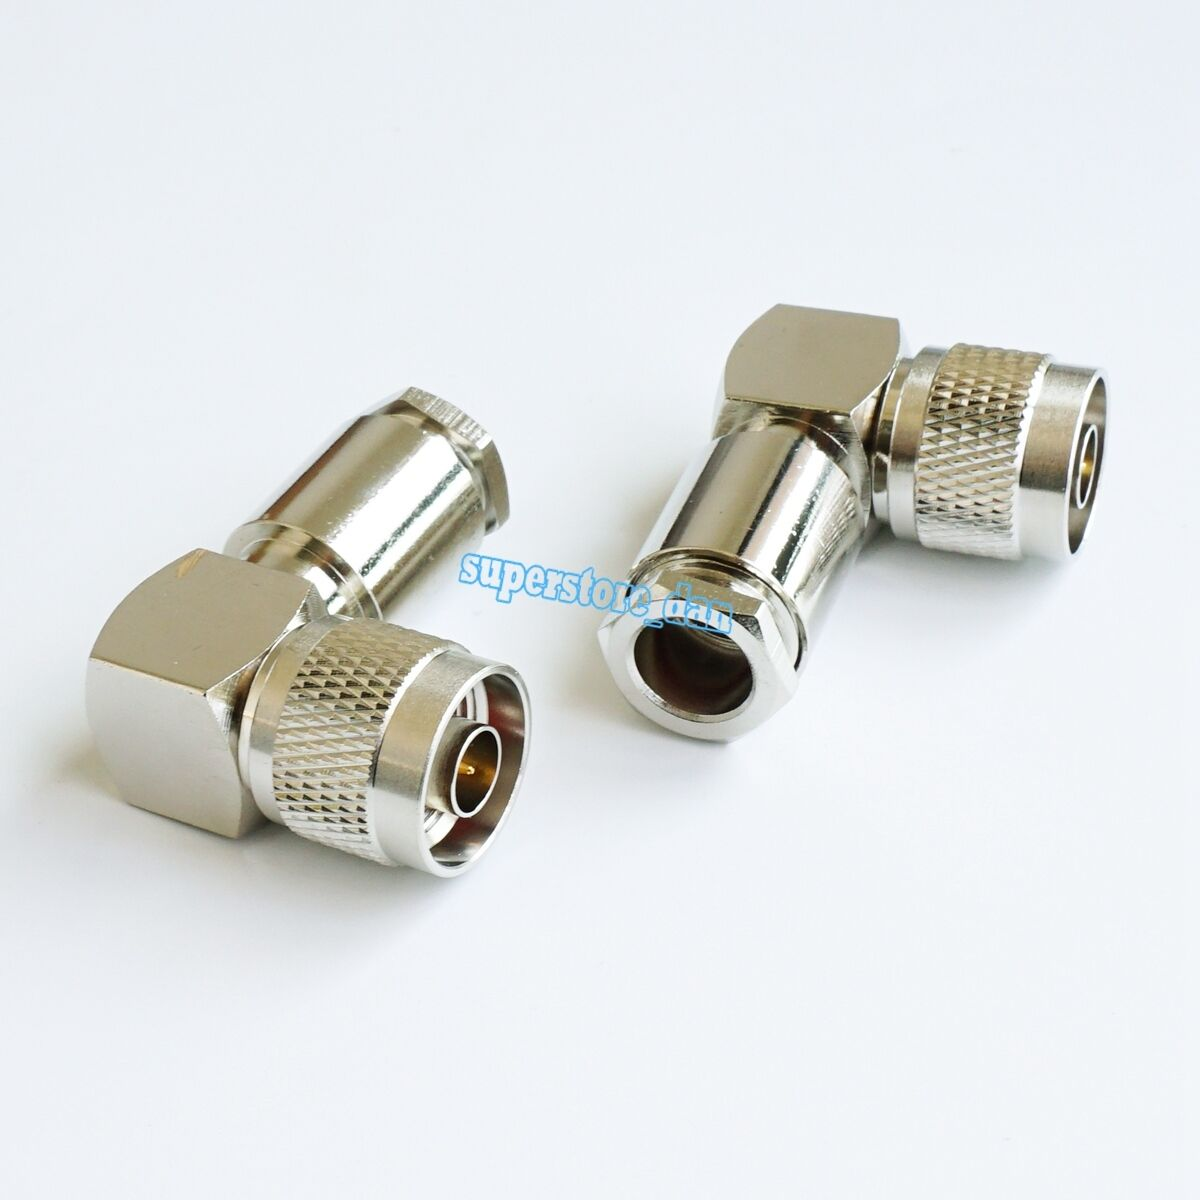 2x UHF Male PL259 Right Angle Clamp RG8 RFC400 RG213 RF Connector Quick USA